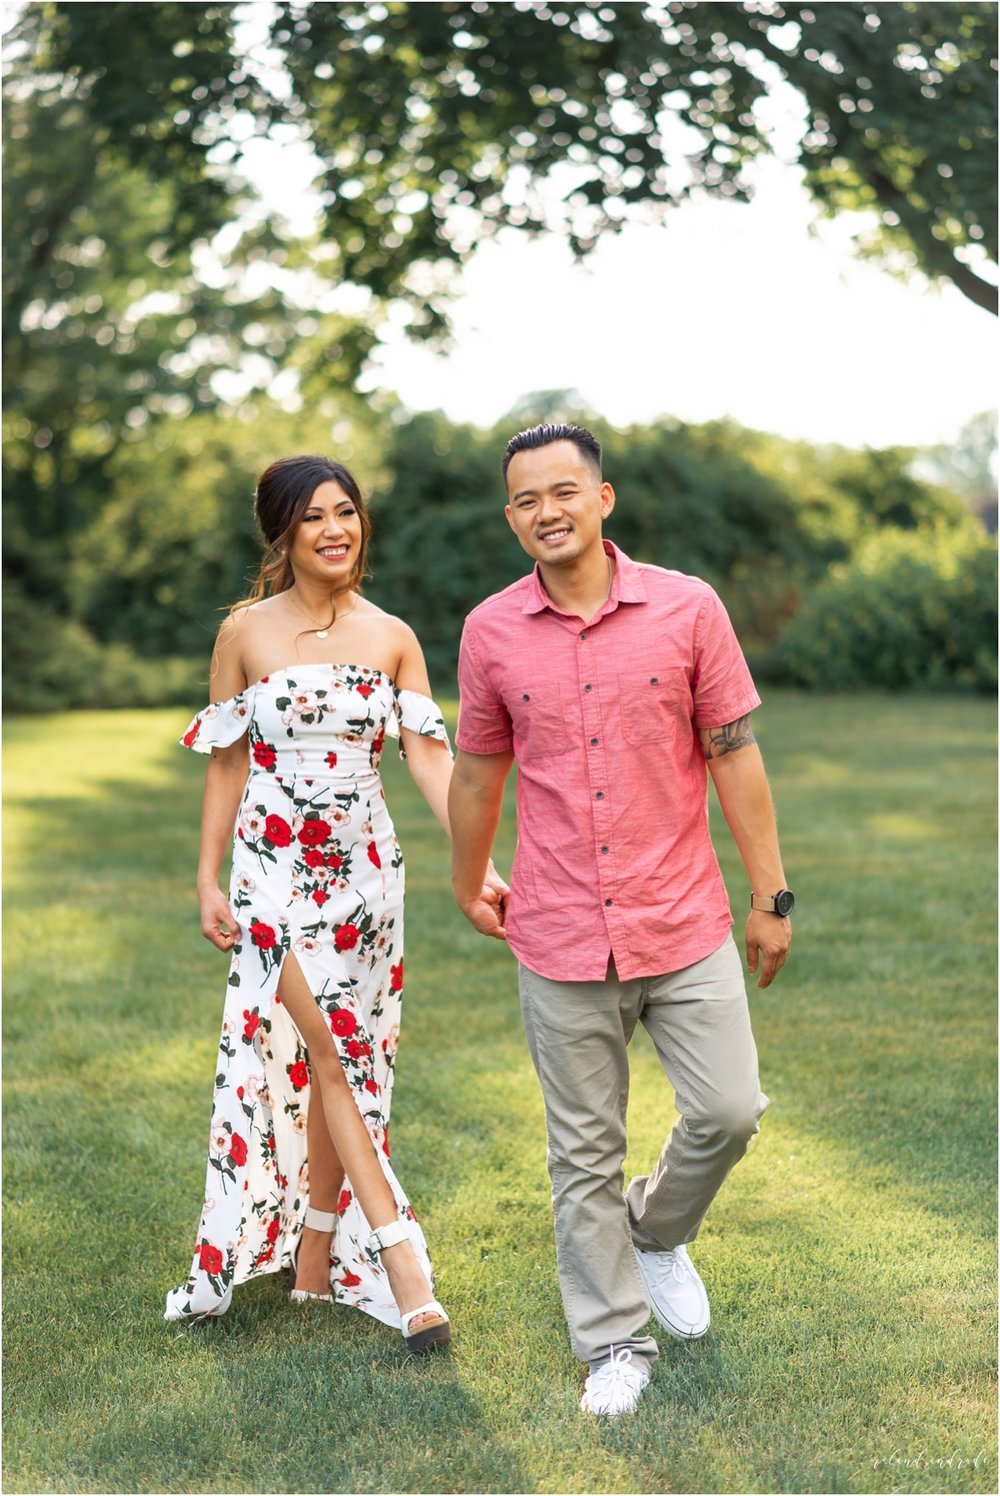 Cantigny Park Engagement Session, Wheaton Illinois Engagement Session, Chicago Wedding Photographer, Naperville Wedding Photographer, Aurora Wedding Photographer_0016.jpg